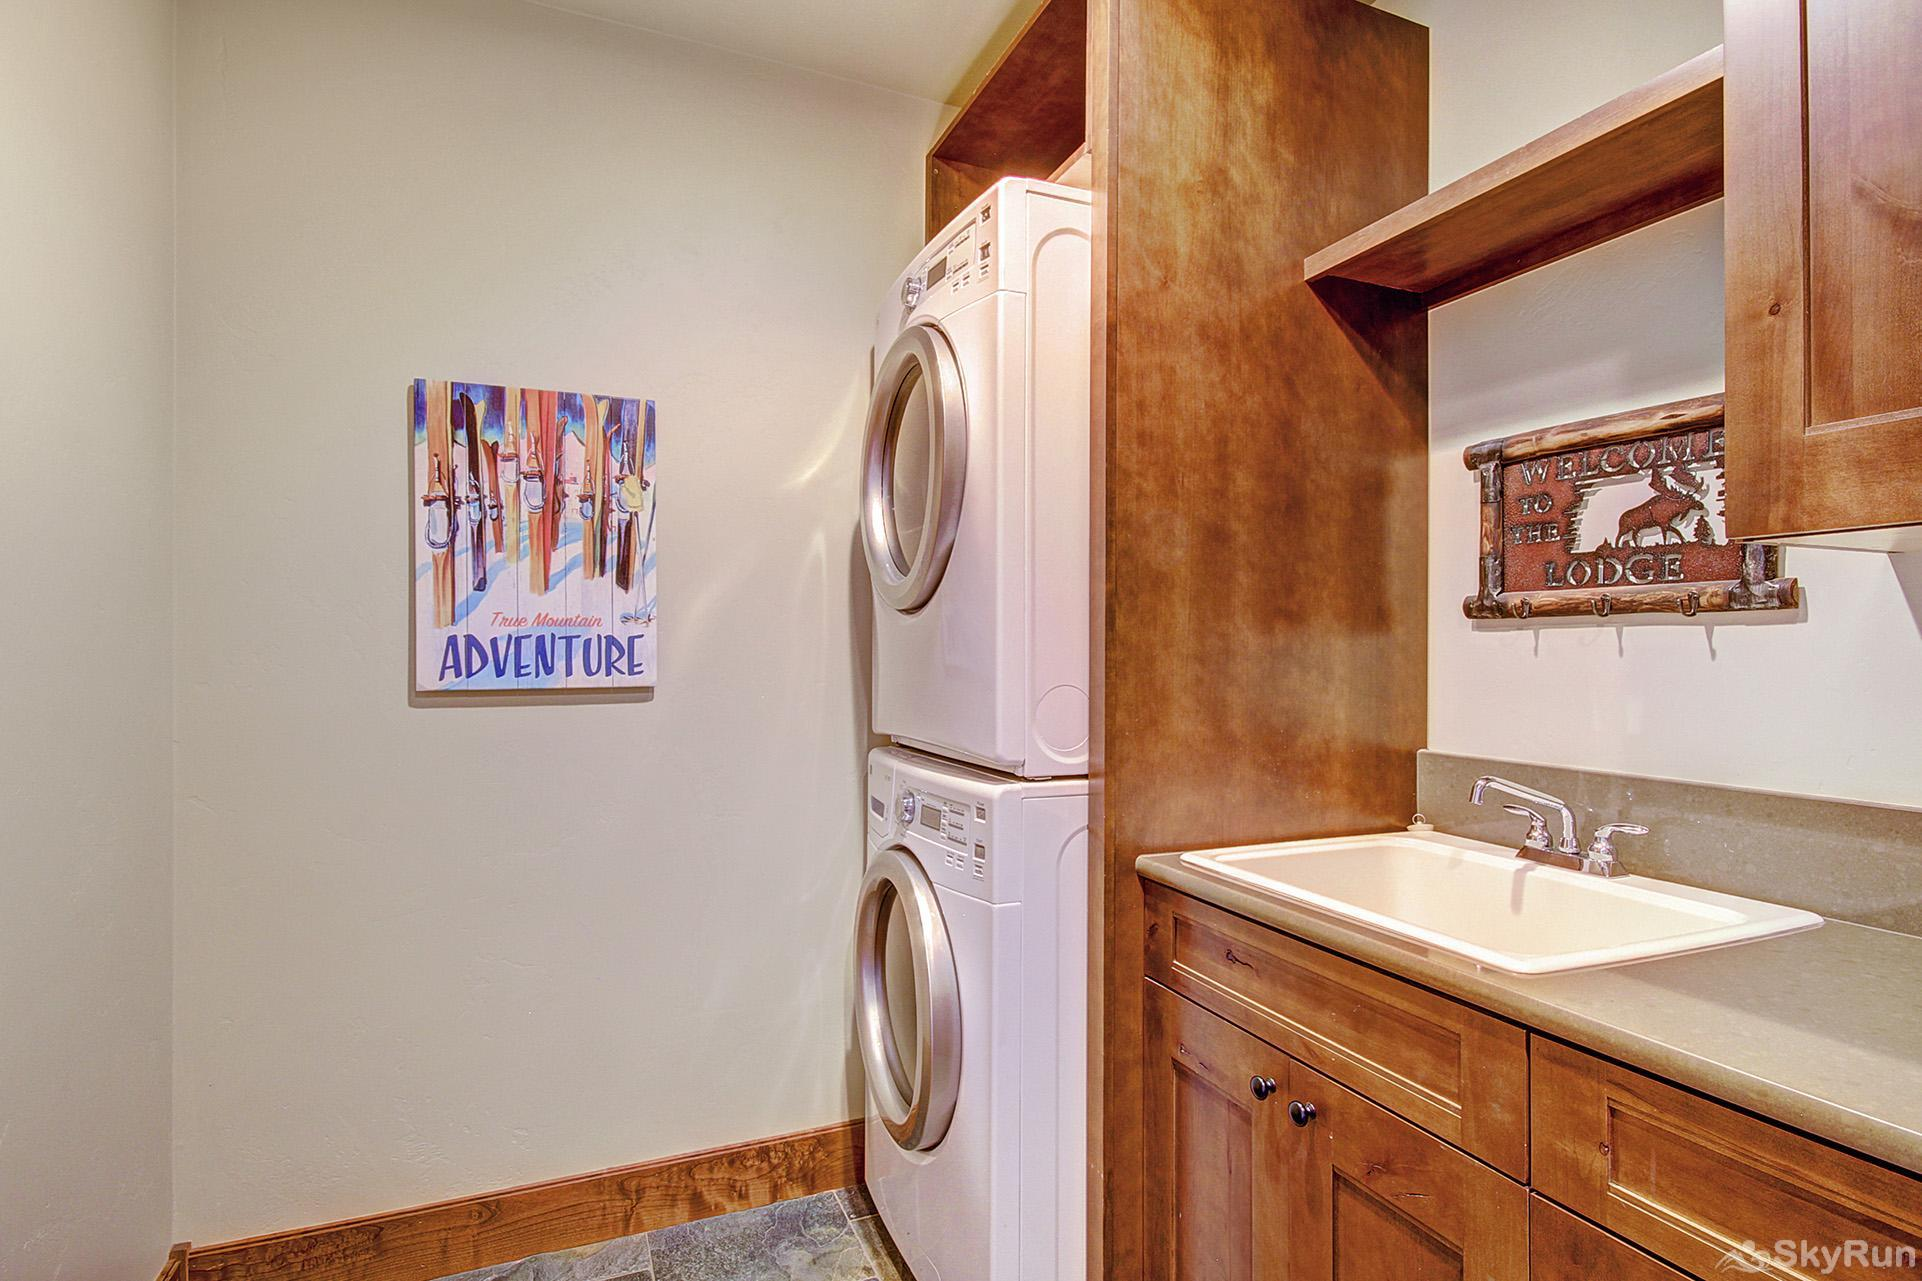 The Shores Lodge Convenient in-home washer and dryer